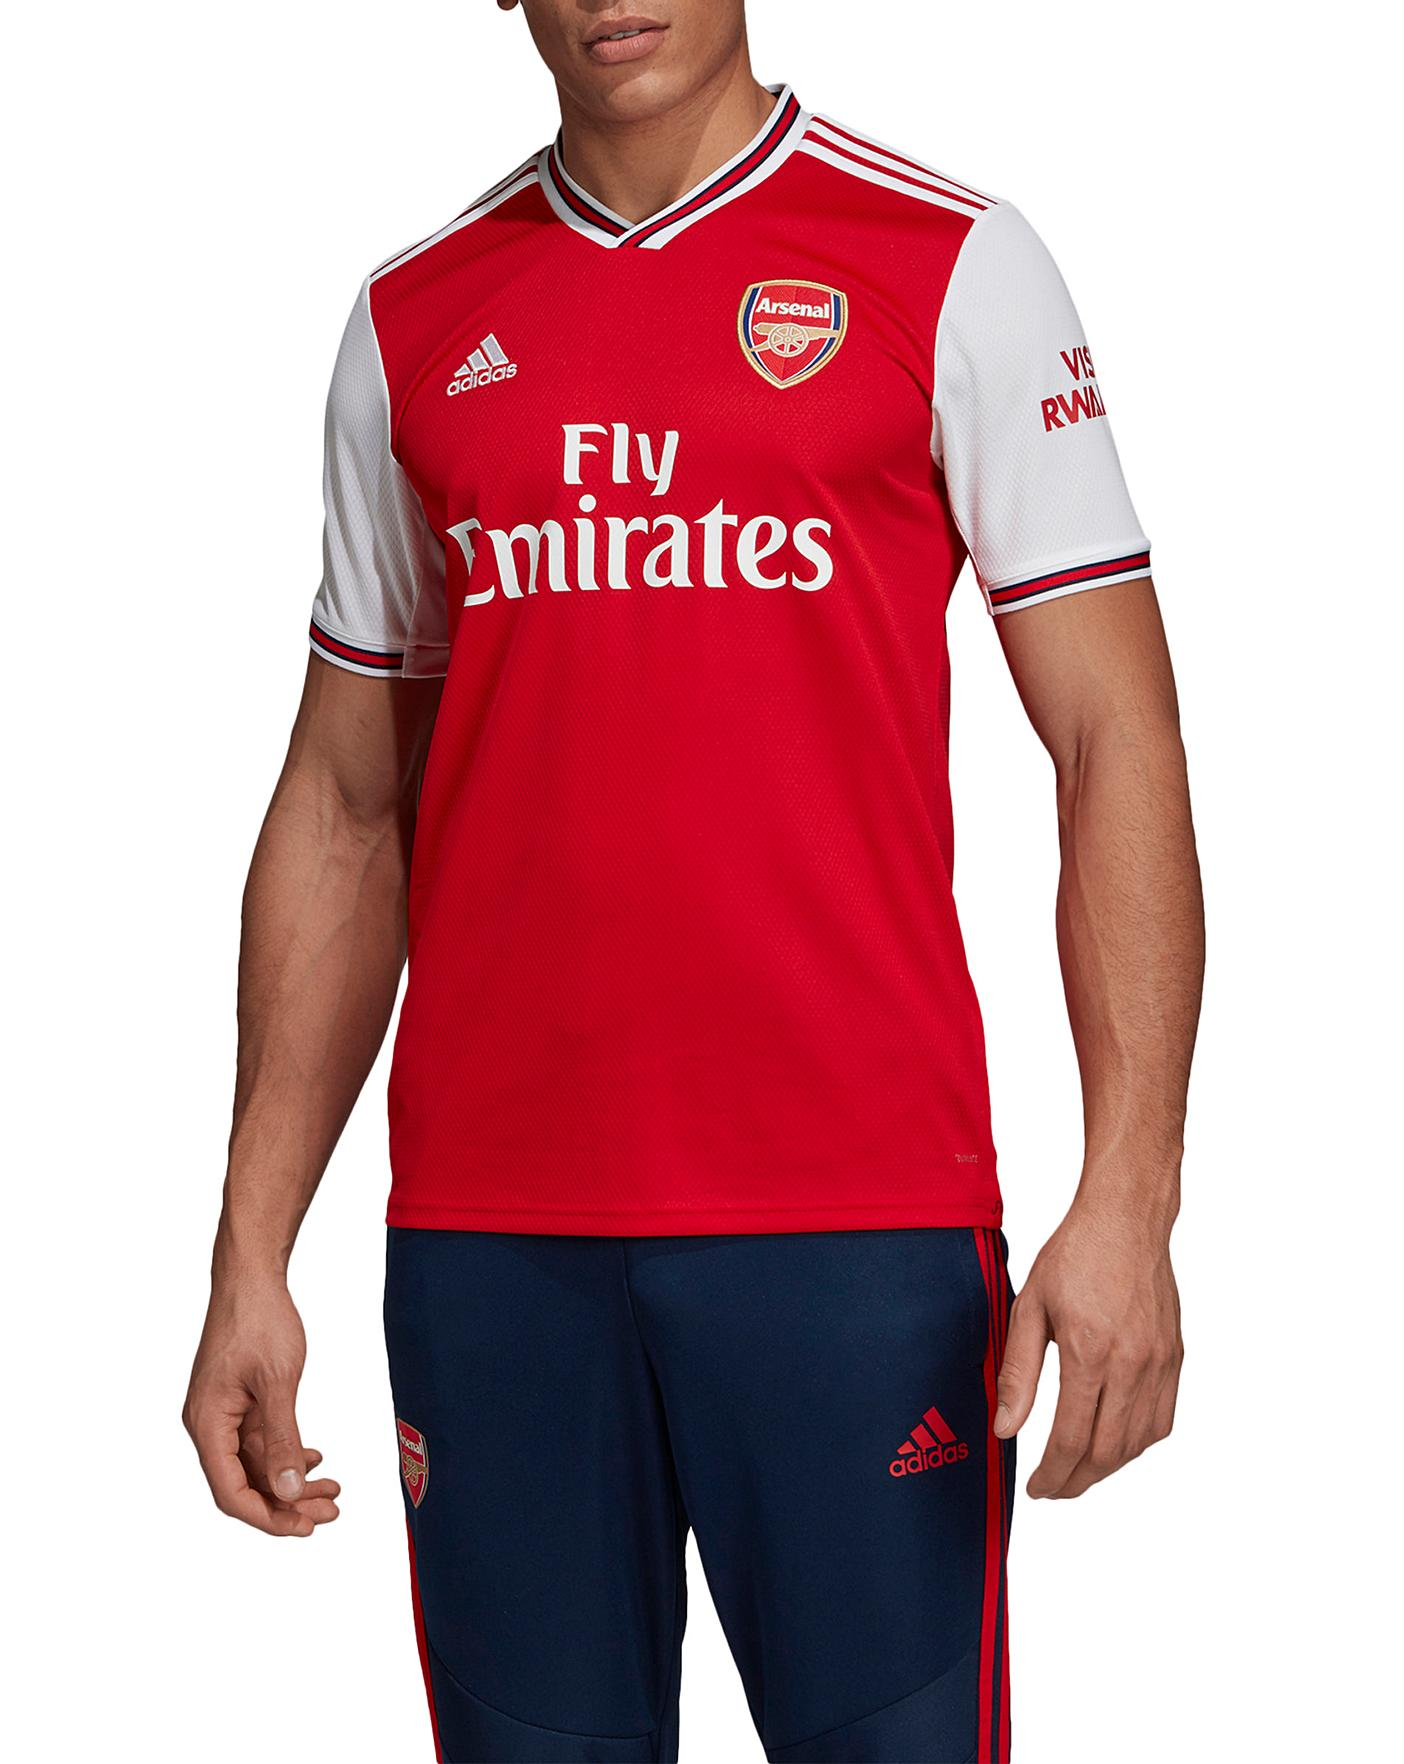 new style 95c5e 7ddd2 AFC adidas Home SS jersey